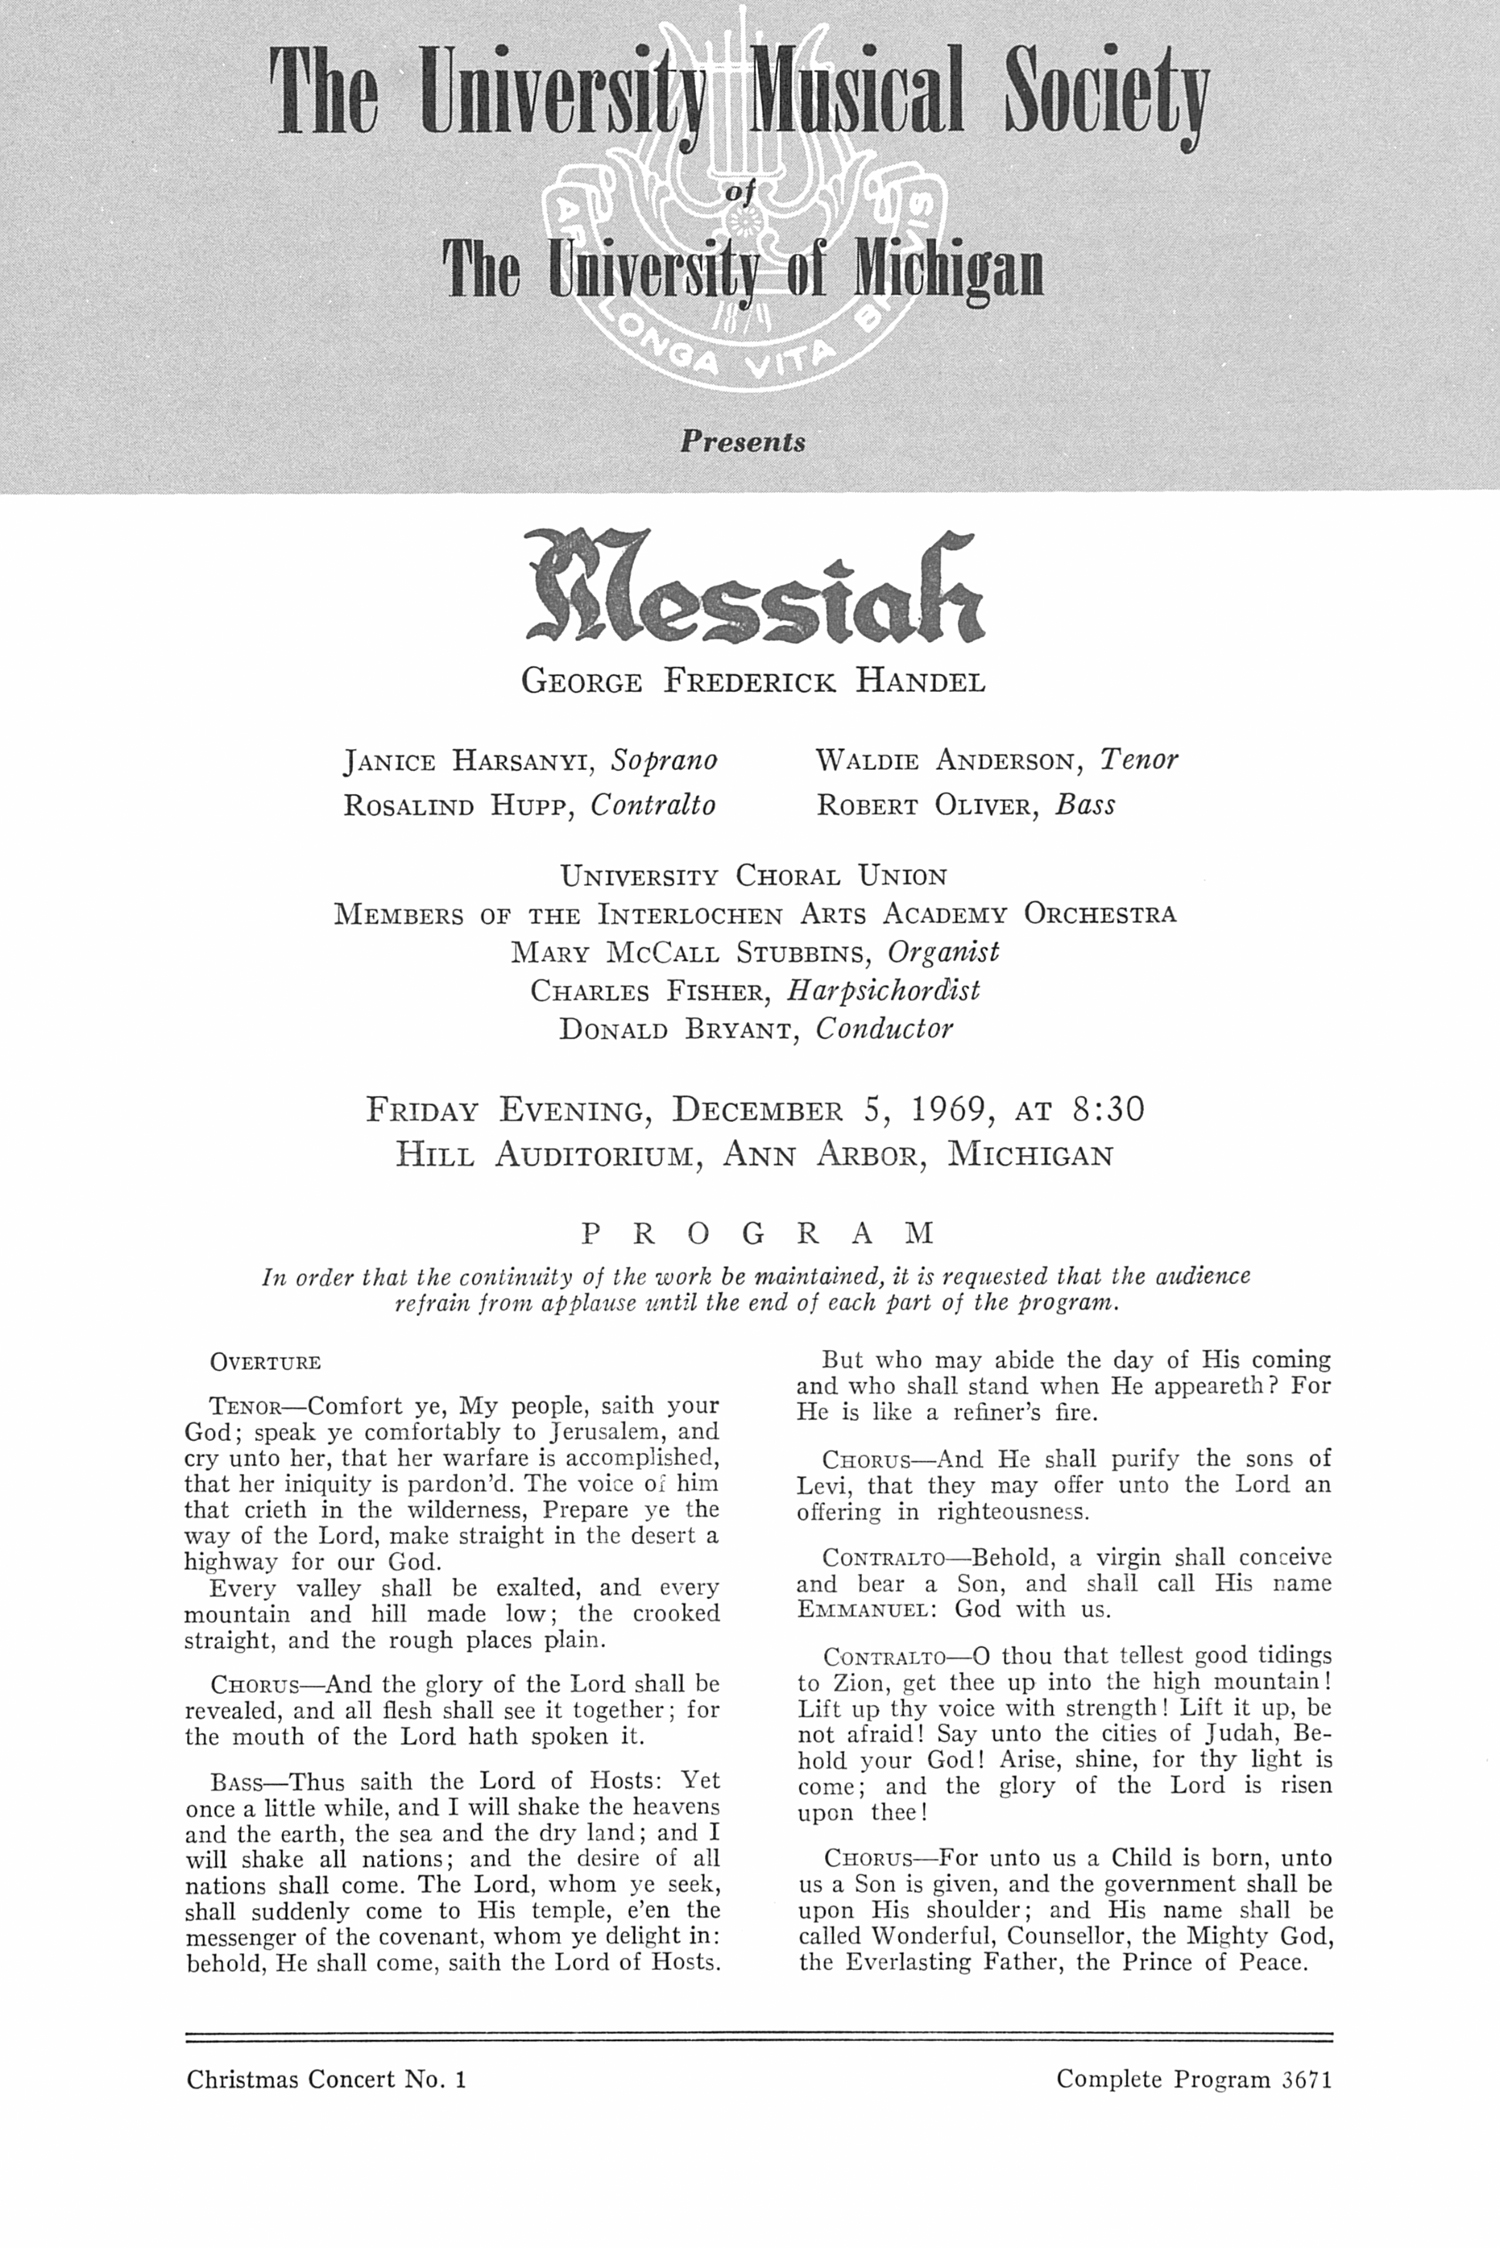 UMS Concert Program, December 5, 1969: Messiah -- George Frederick Handel image